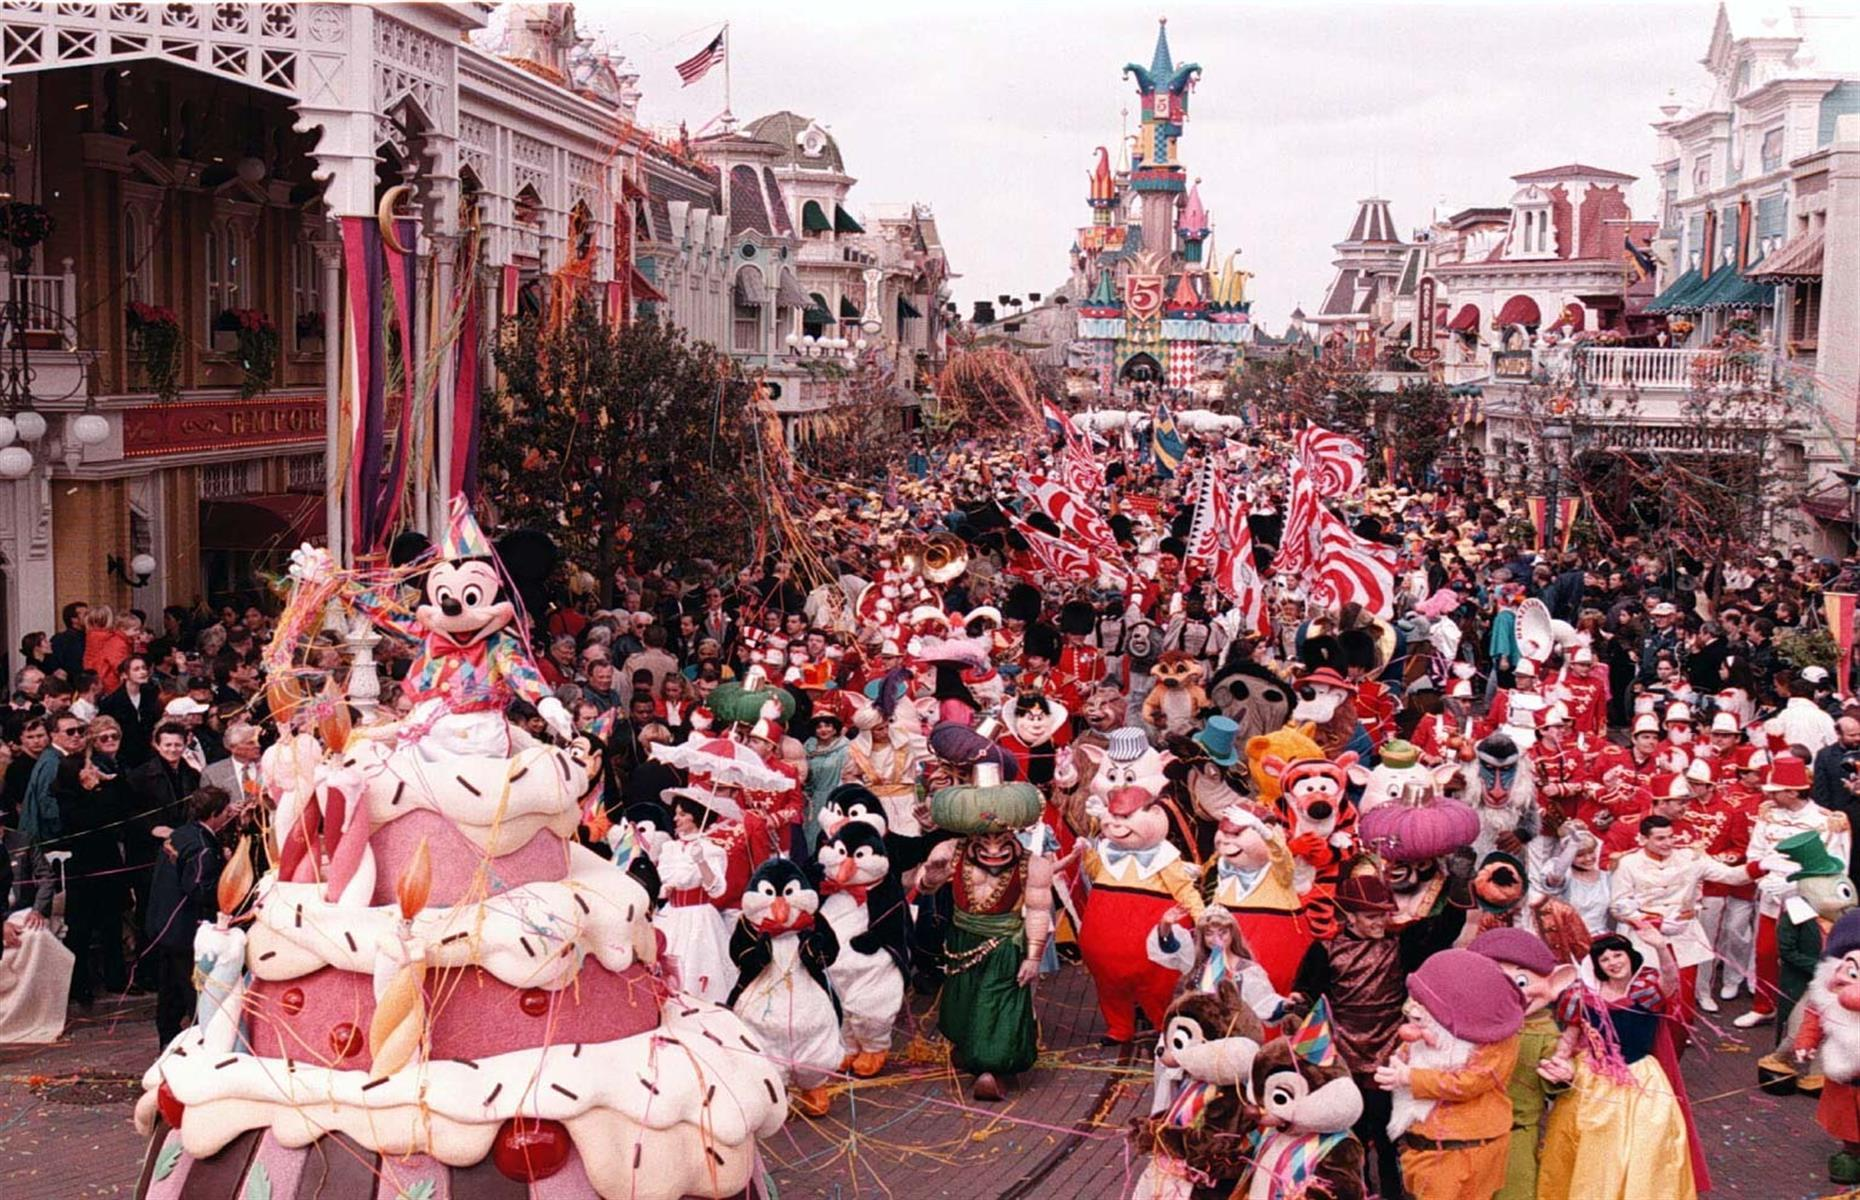 Slide 33 of 38: In 1992, Disney came to Europe with the opening of Disneyland Paris (then Euro Disney Resort). Brits and holidaymakers from the Continent flocked to the magical park throughout the decade, and a trip to Euro Disney became the vacation of dreams for the Nineties kid. In this 1997 photo, the park is filled to the brim as colorful celebrations for its fifth birthday are in full swing. Love this? Now discover how air travel has changed in every decade from the 1920s.